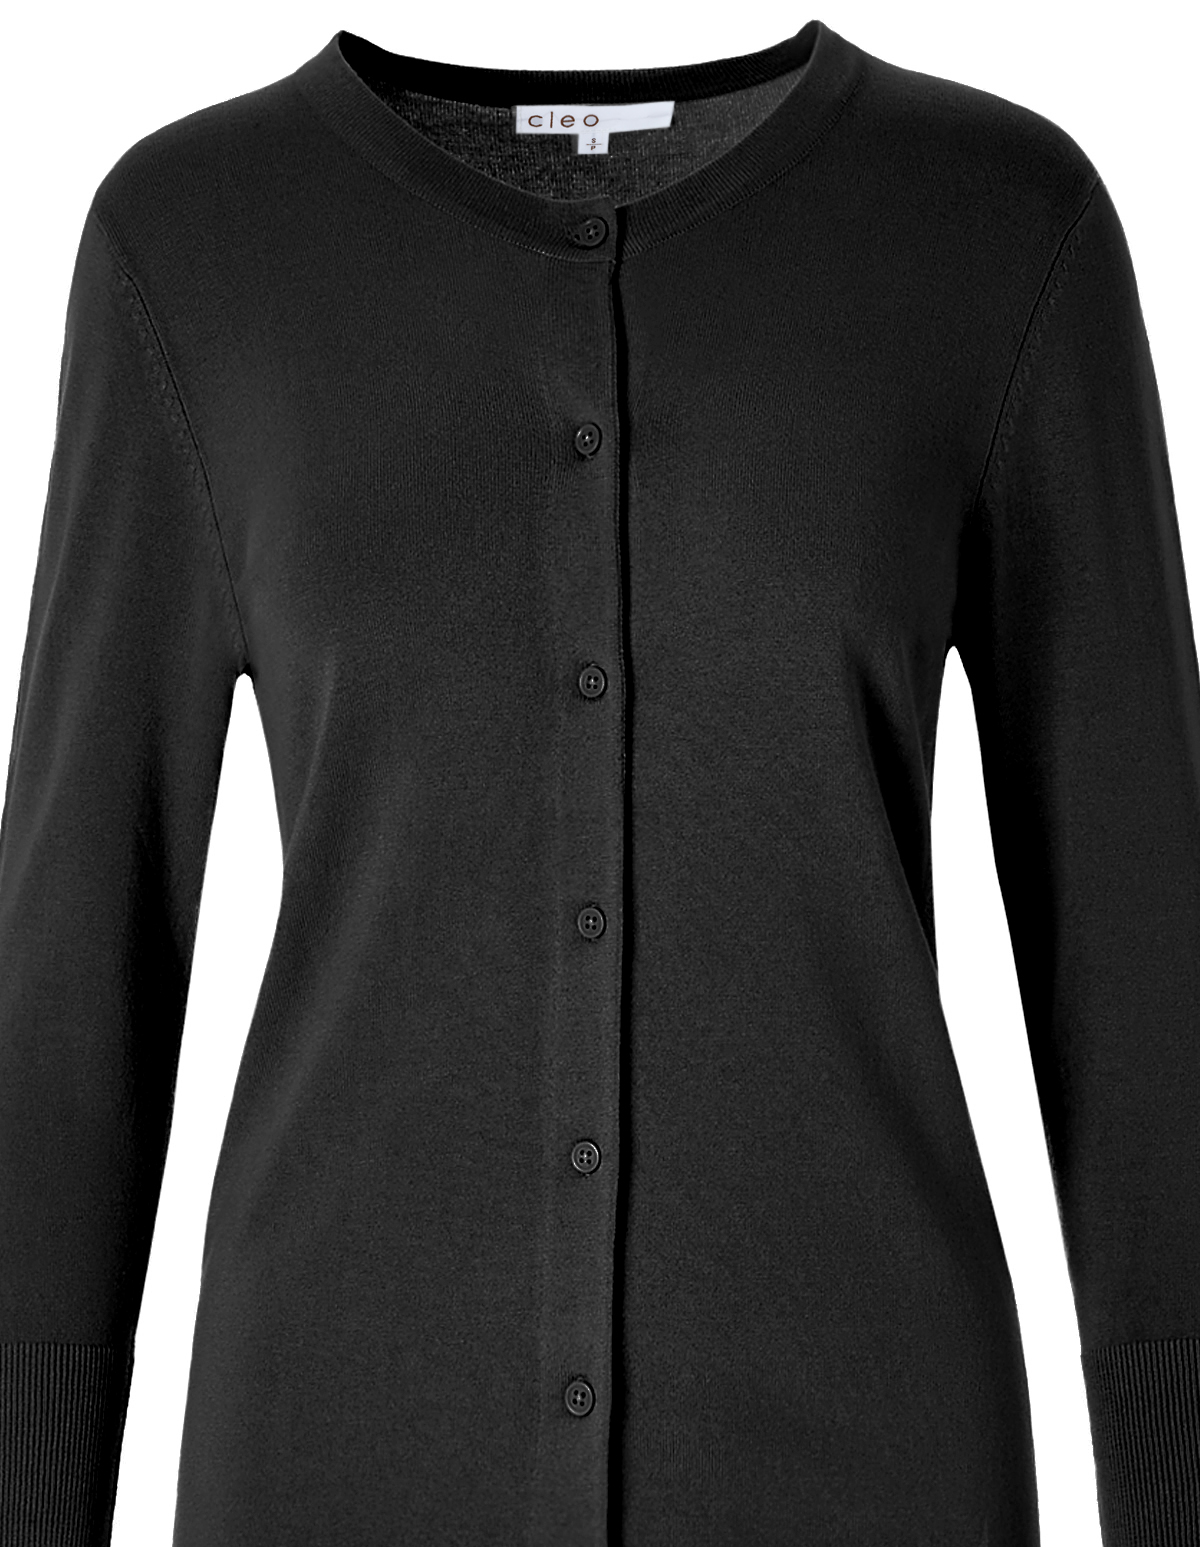 Competitive Black XL Cardigans & Sweaters online, Gamiss offers you Color Matching Long Sleeve Crew Neck Sweater at $, we also offer Wholesale service. Cheap Fashion online retailer providing customers trendy and stylish clothing including different categories such as dresses, tops, swimwear.